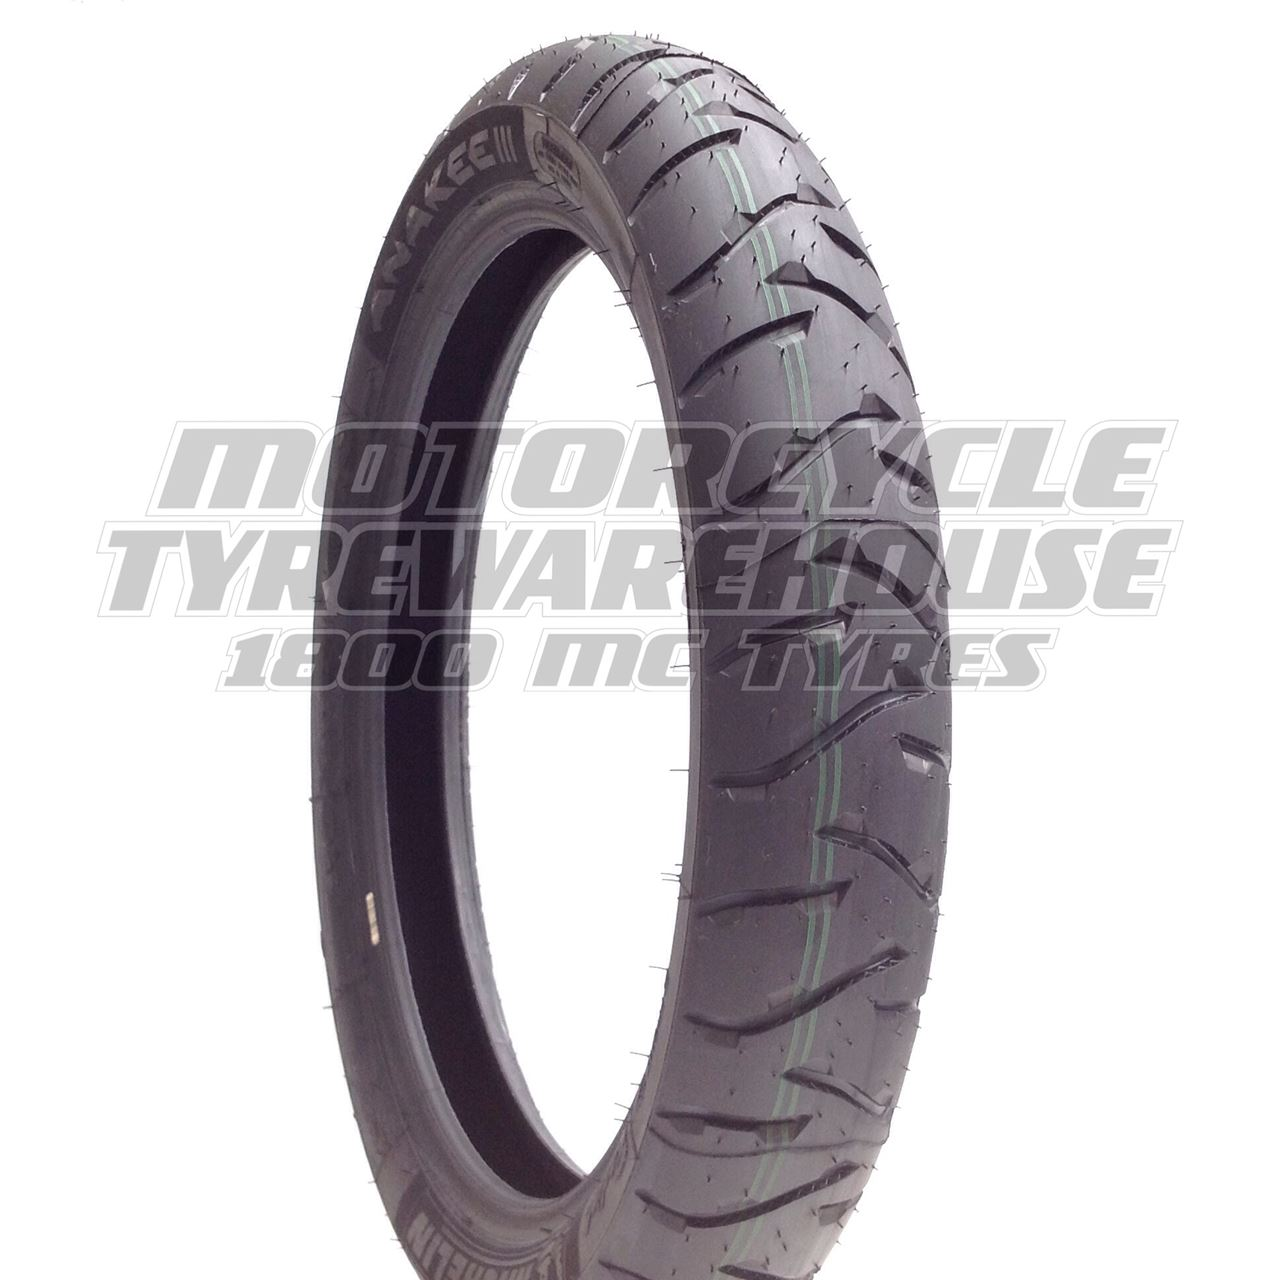 motorcycle tyre warehouse australia 39 s largest motorcycle. Black Bedroom Furniture Sets. Home Design Ideas